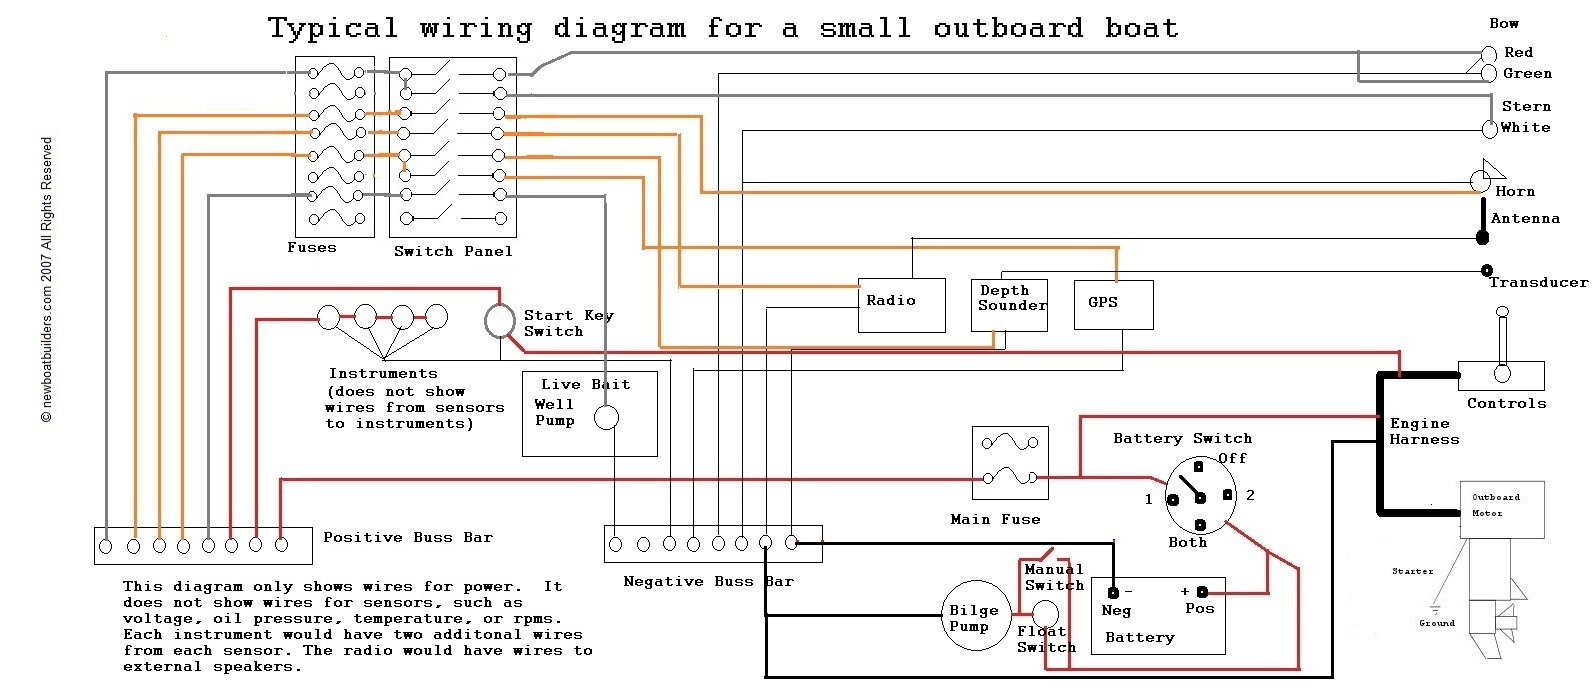 boat wiring harness diagram wiring diagram rh 31 yoga neuwied de